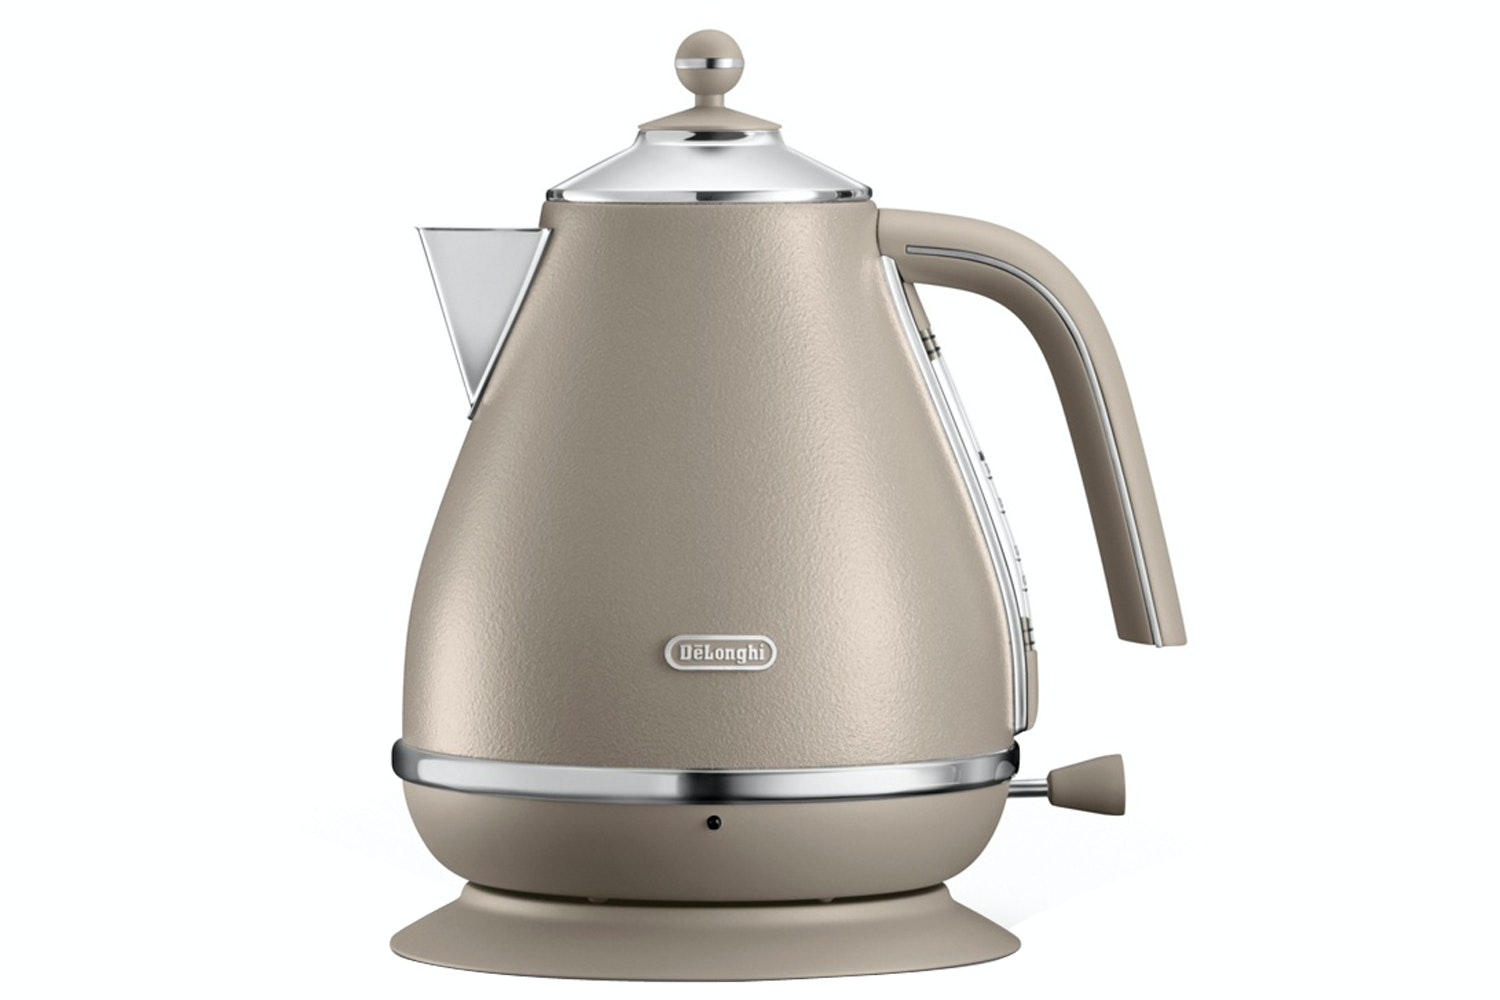 Delonghi Icona Elements Kettle | Sand Beige